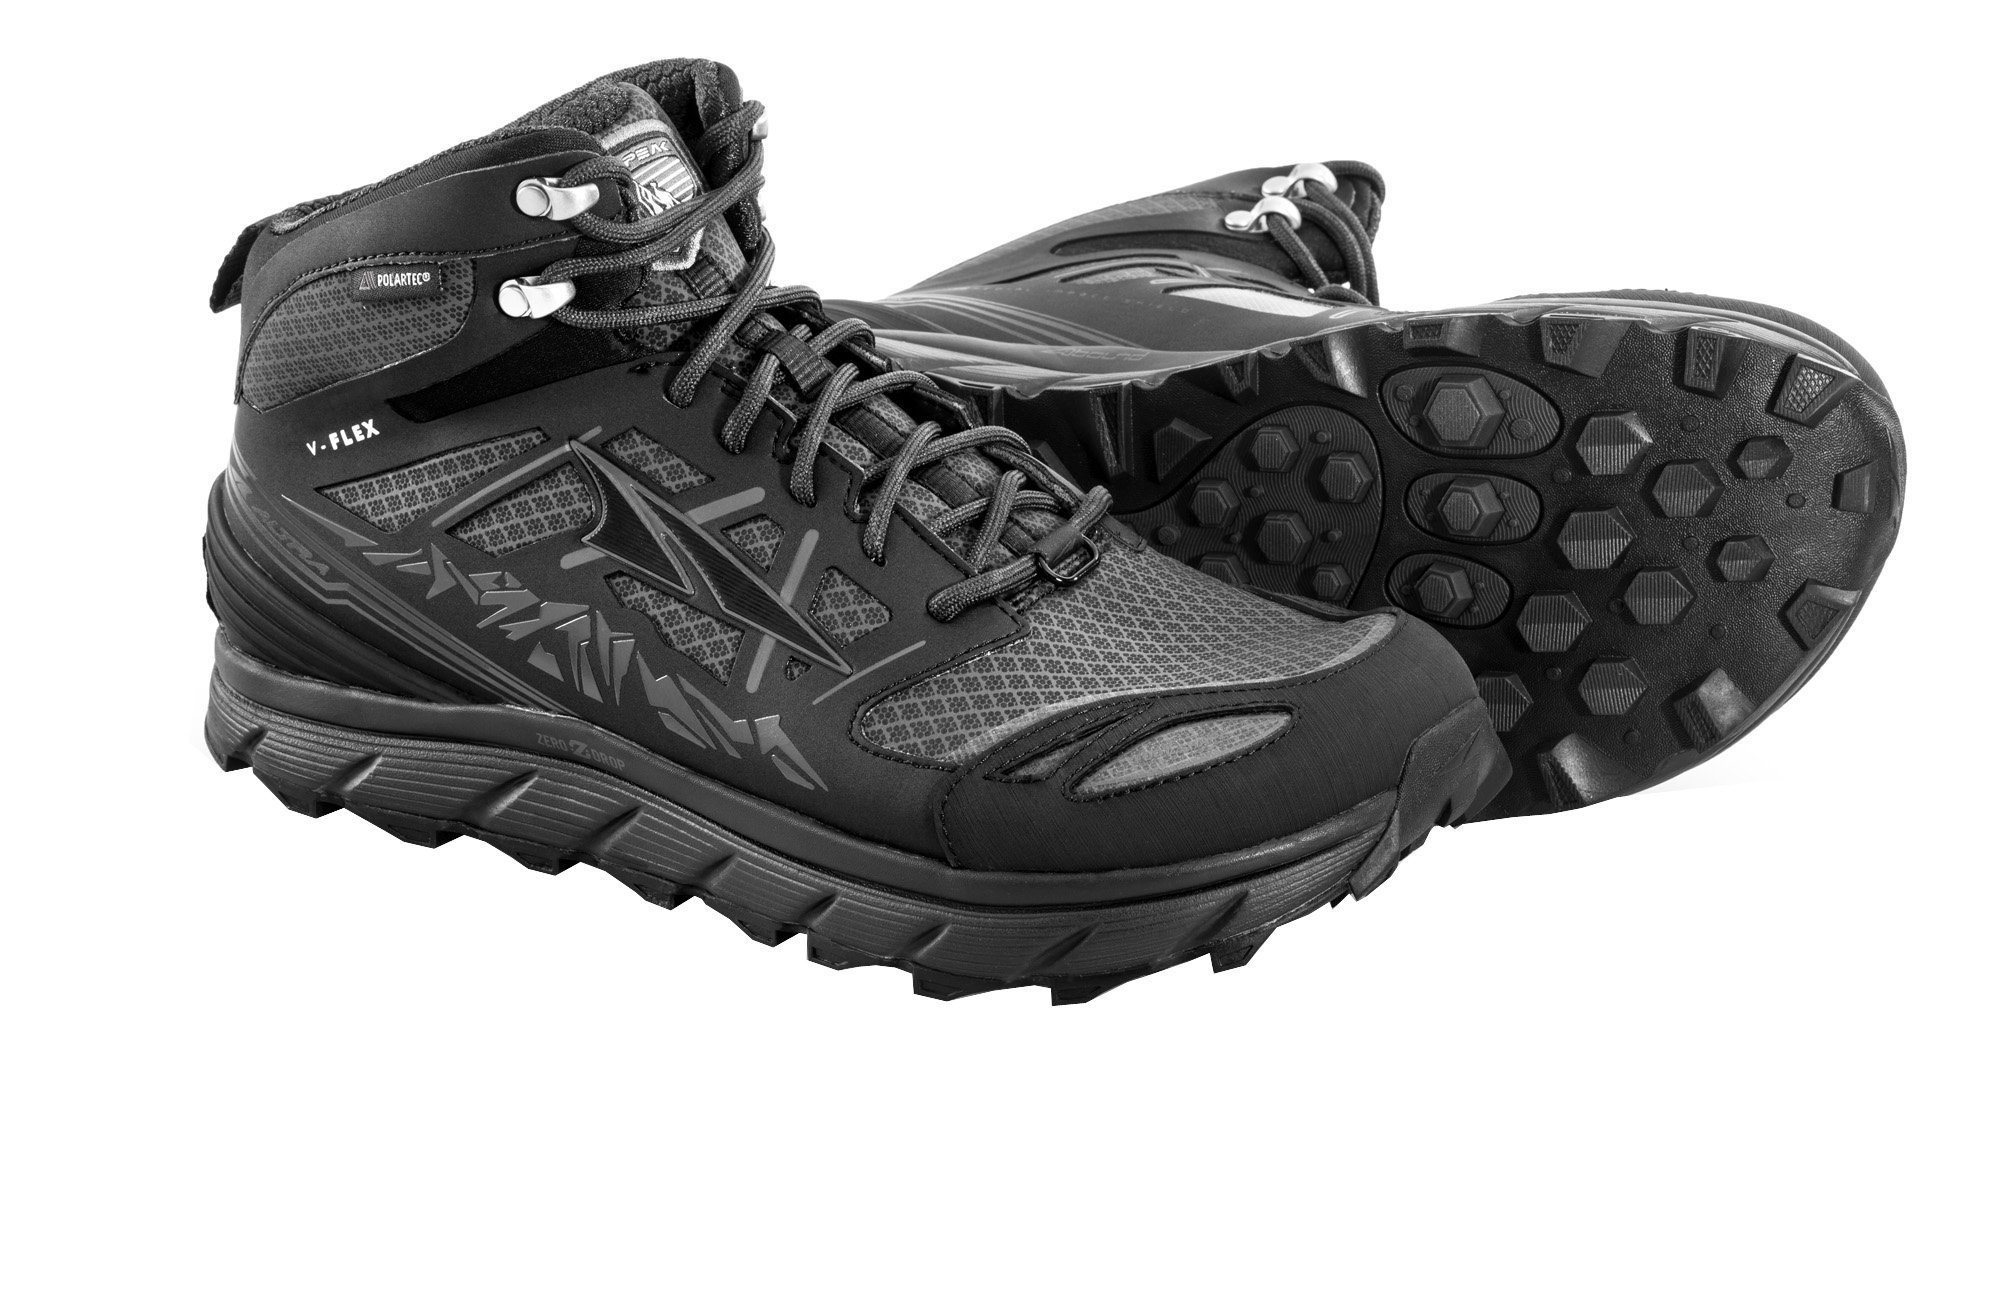 Altra Lone Peak 3 Mid Neo Running Shoes - Men's Black 8.5 by Altra